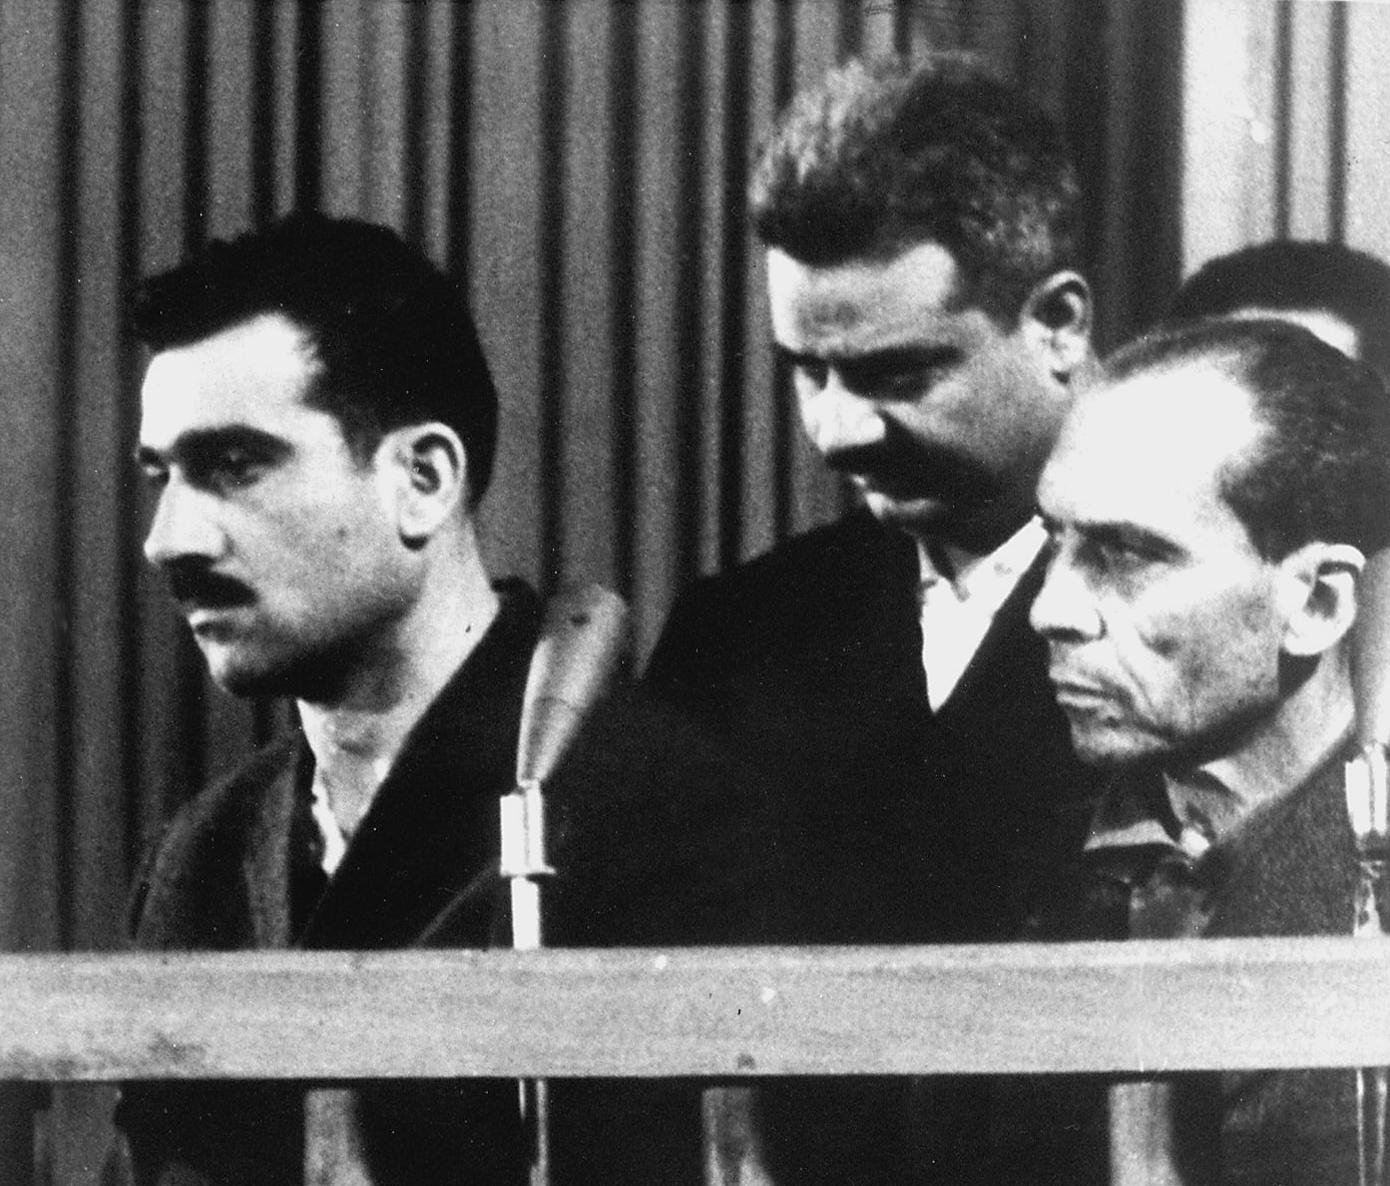 Picture dated 09 May 1965 shows Israeli spy Eli Cohen (L) and two other unidentified co-defendants, during their trial in Damascus, ten days before his executio